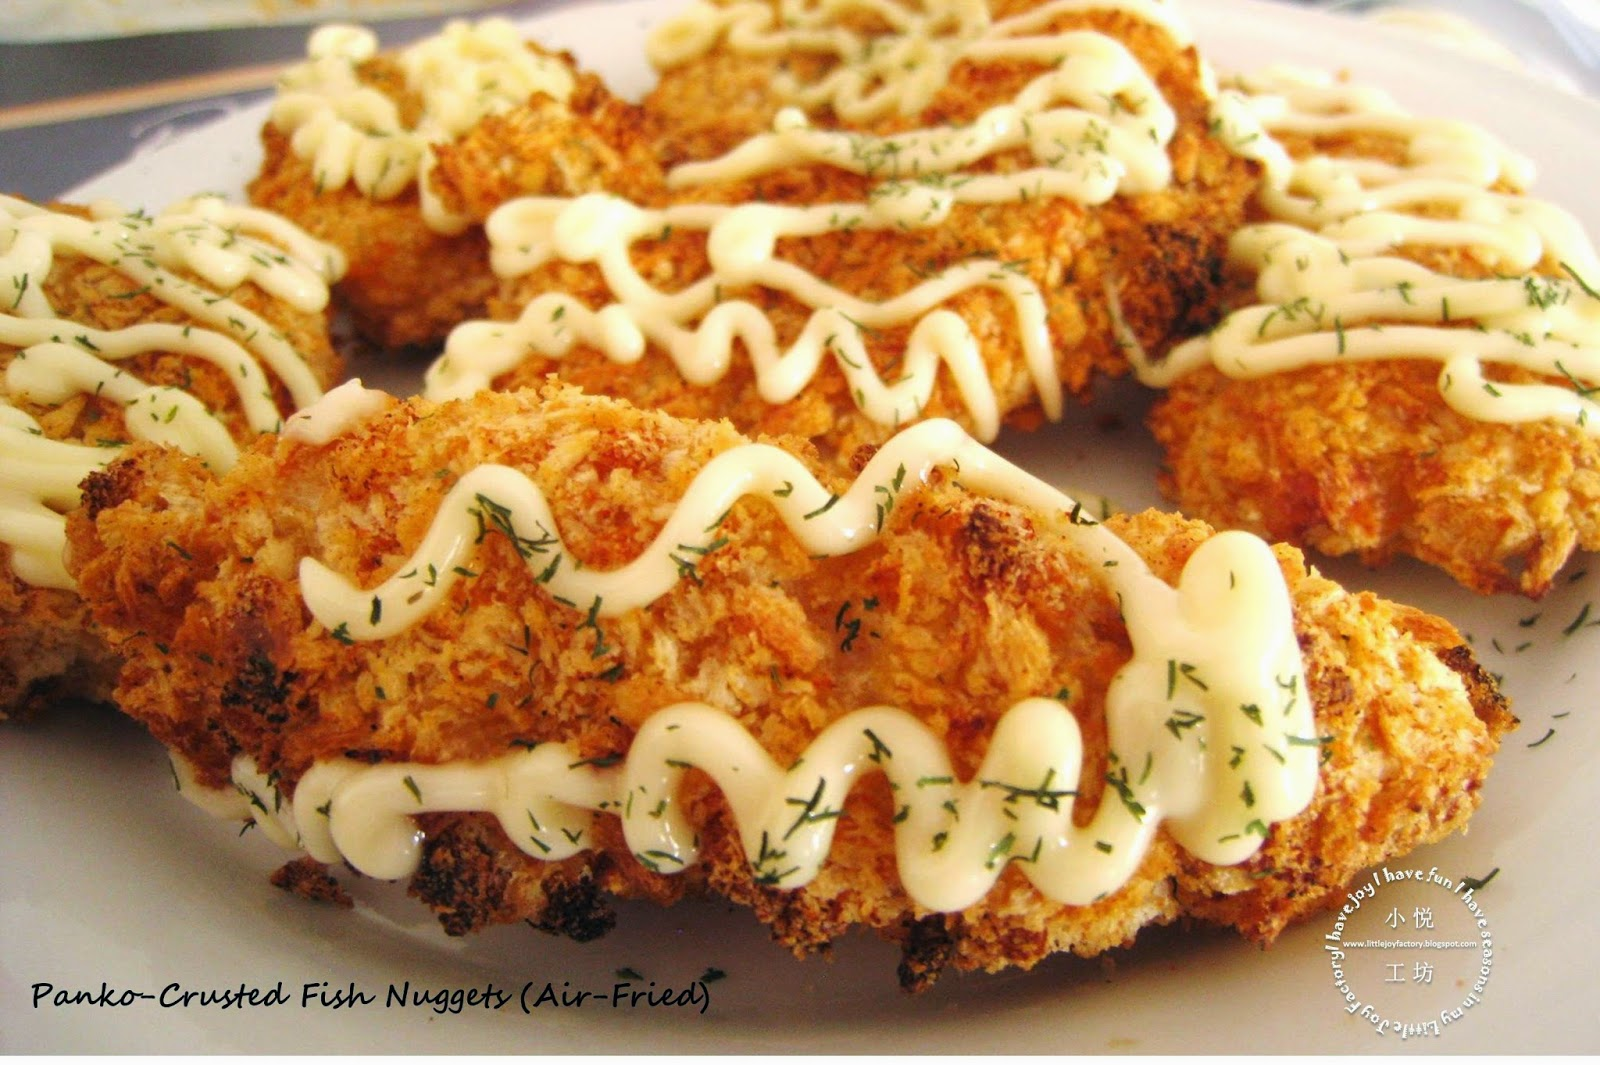 Little joy factory air fried panko crusted fish nuggets for Airfryer battered fish